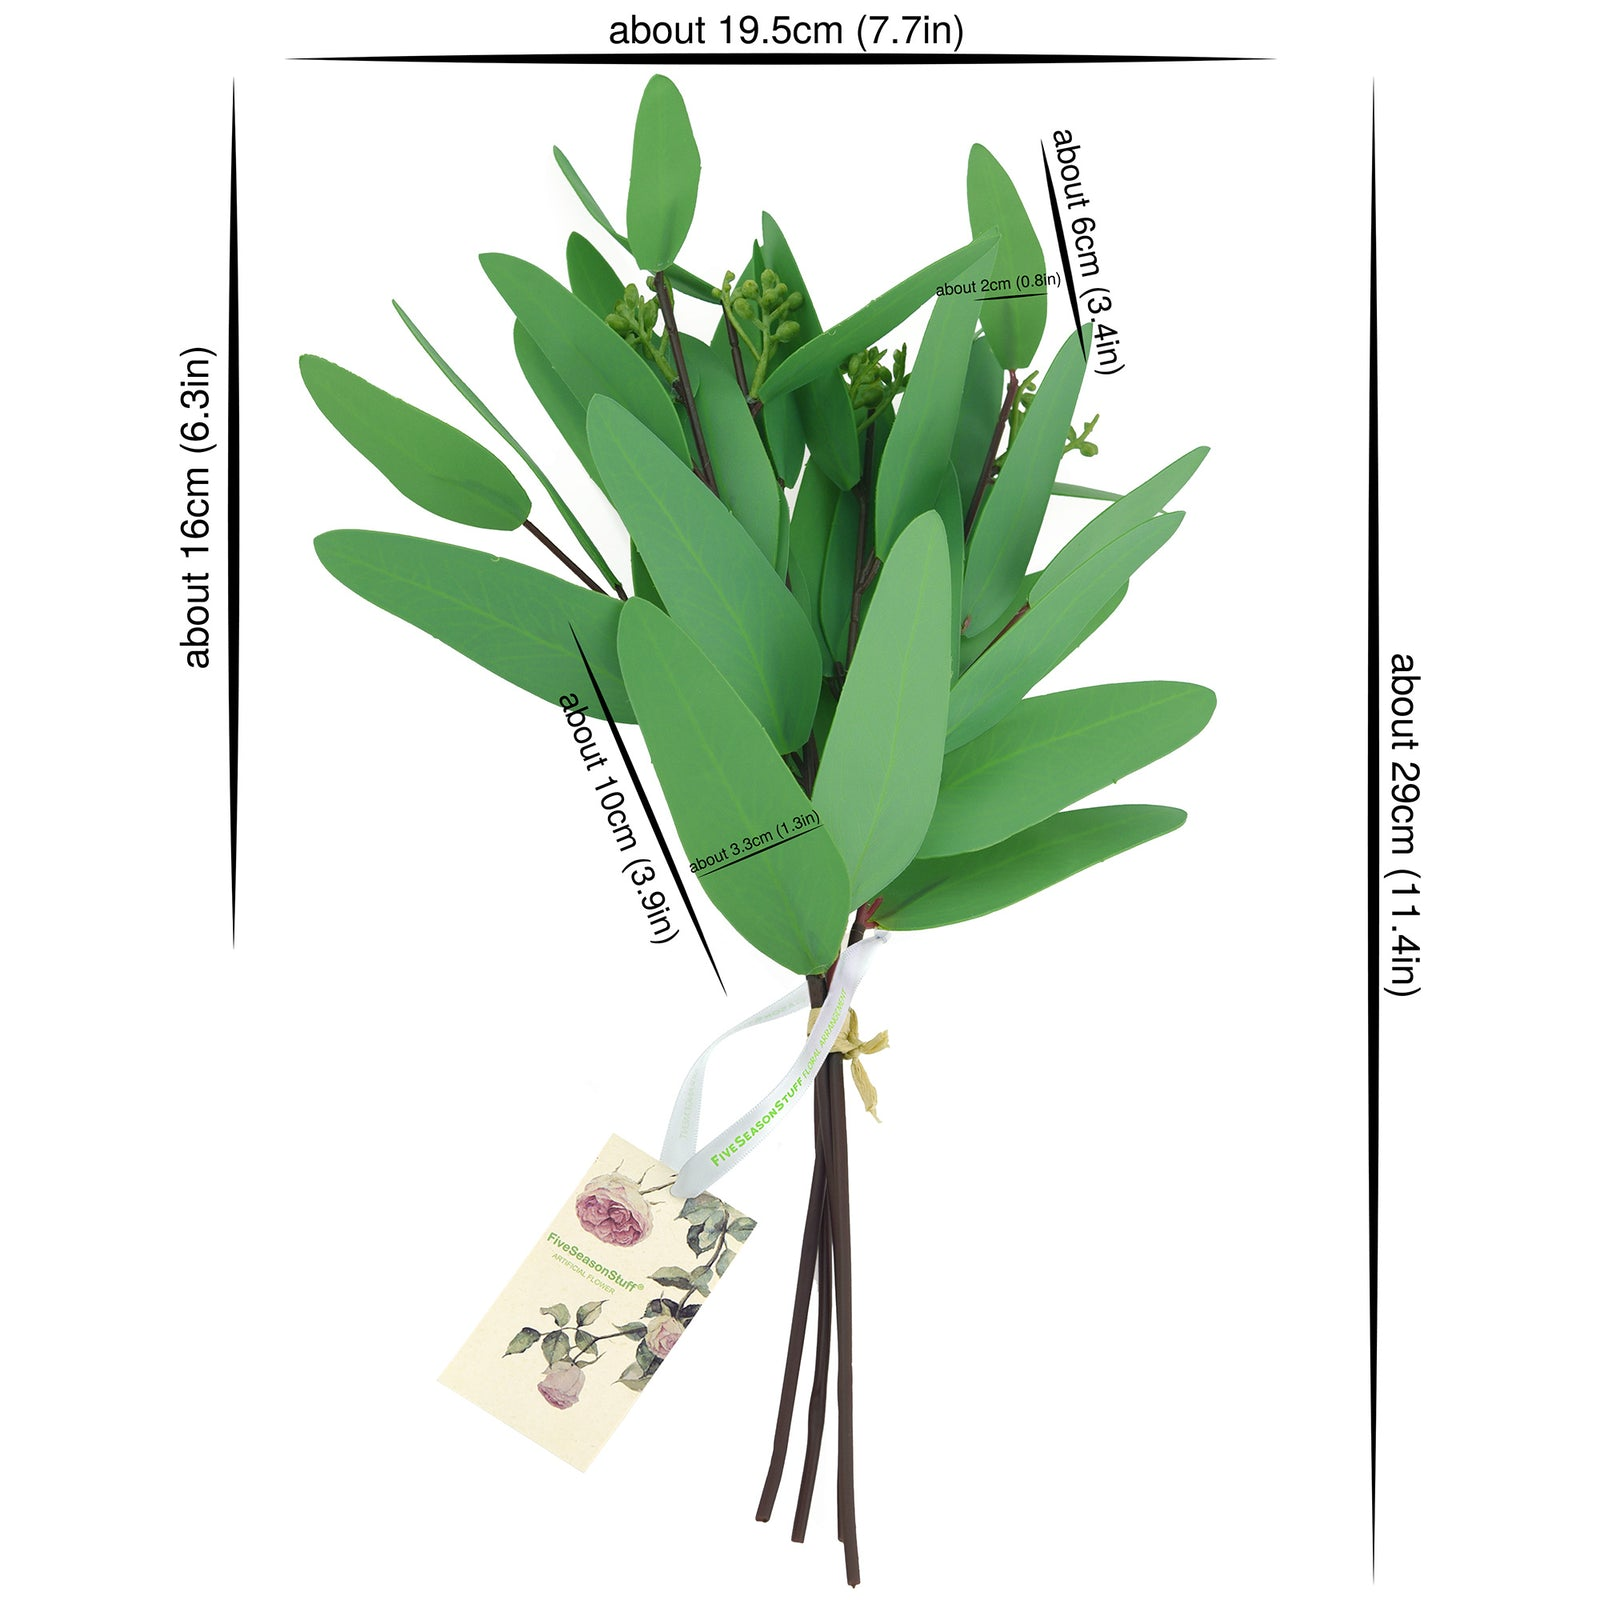 FiveSeasonStuff 4 Pcs Artificial Real Touch Realistic Eucalyptus Leaves Decoration Home Décor (Seeded Eucalyptus Style1 4 Stems)